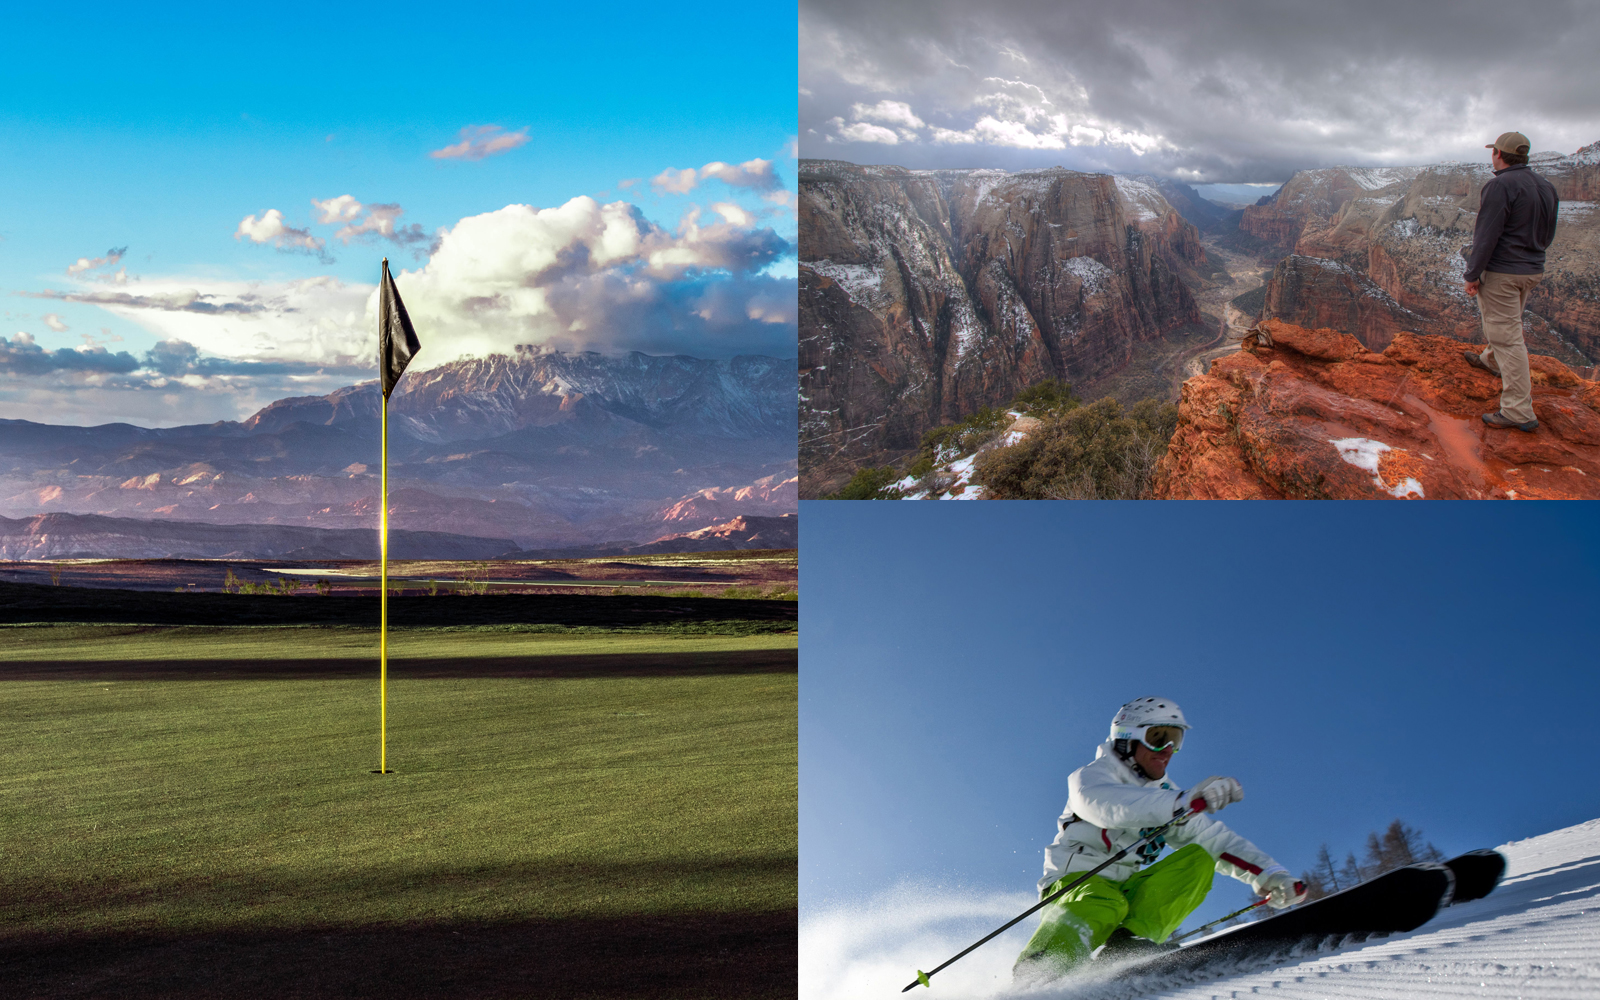 Winter golf, ski and mountain range in Utah